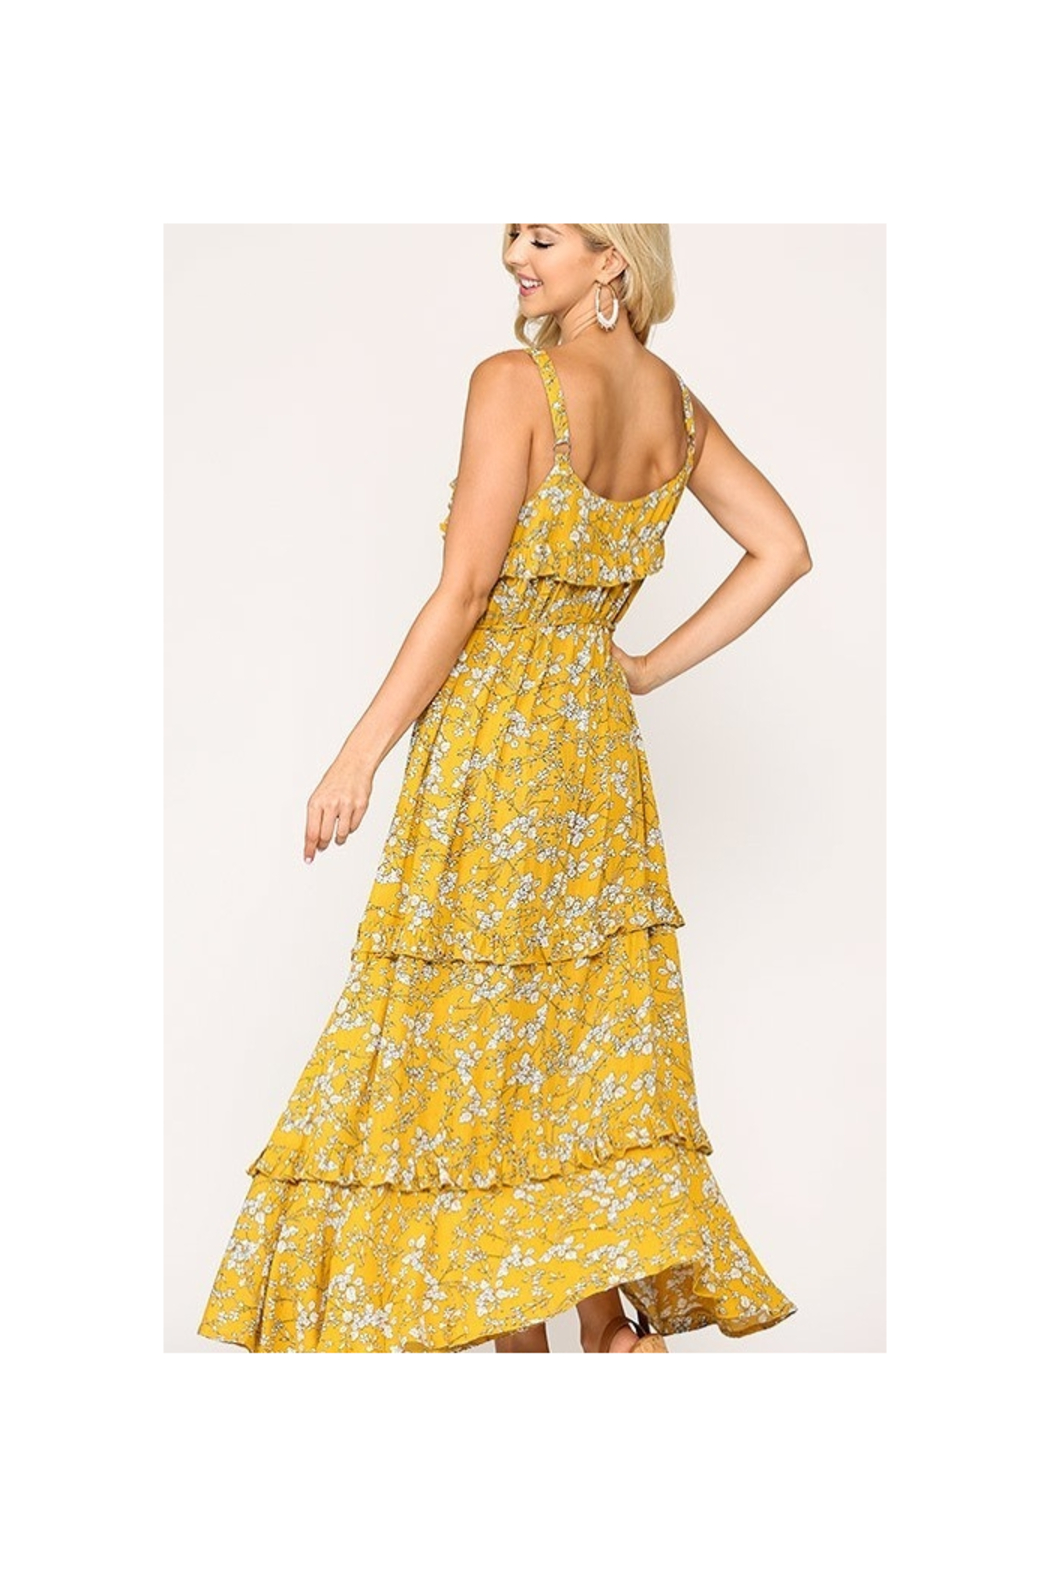 GiGiO Yellow Floral Print Ruffle Detail Tiered Maxi Dress - Front Full Image